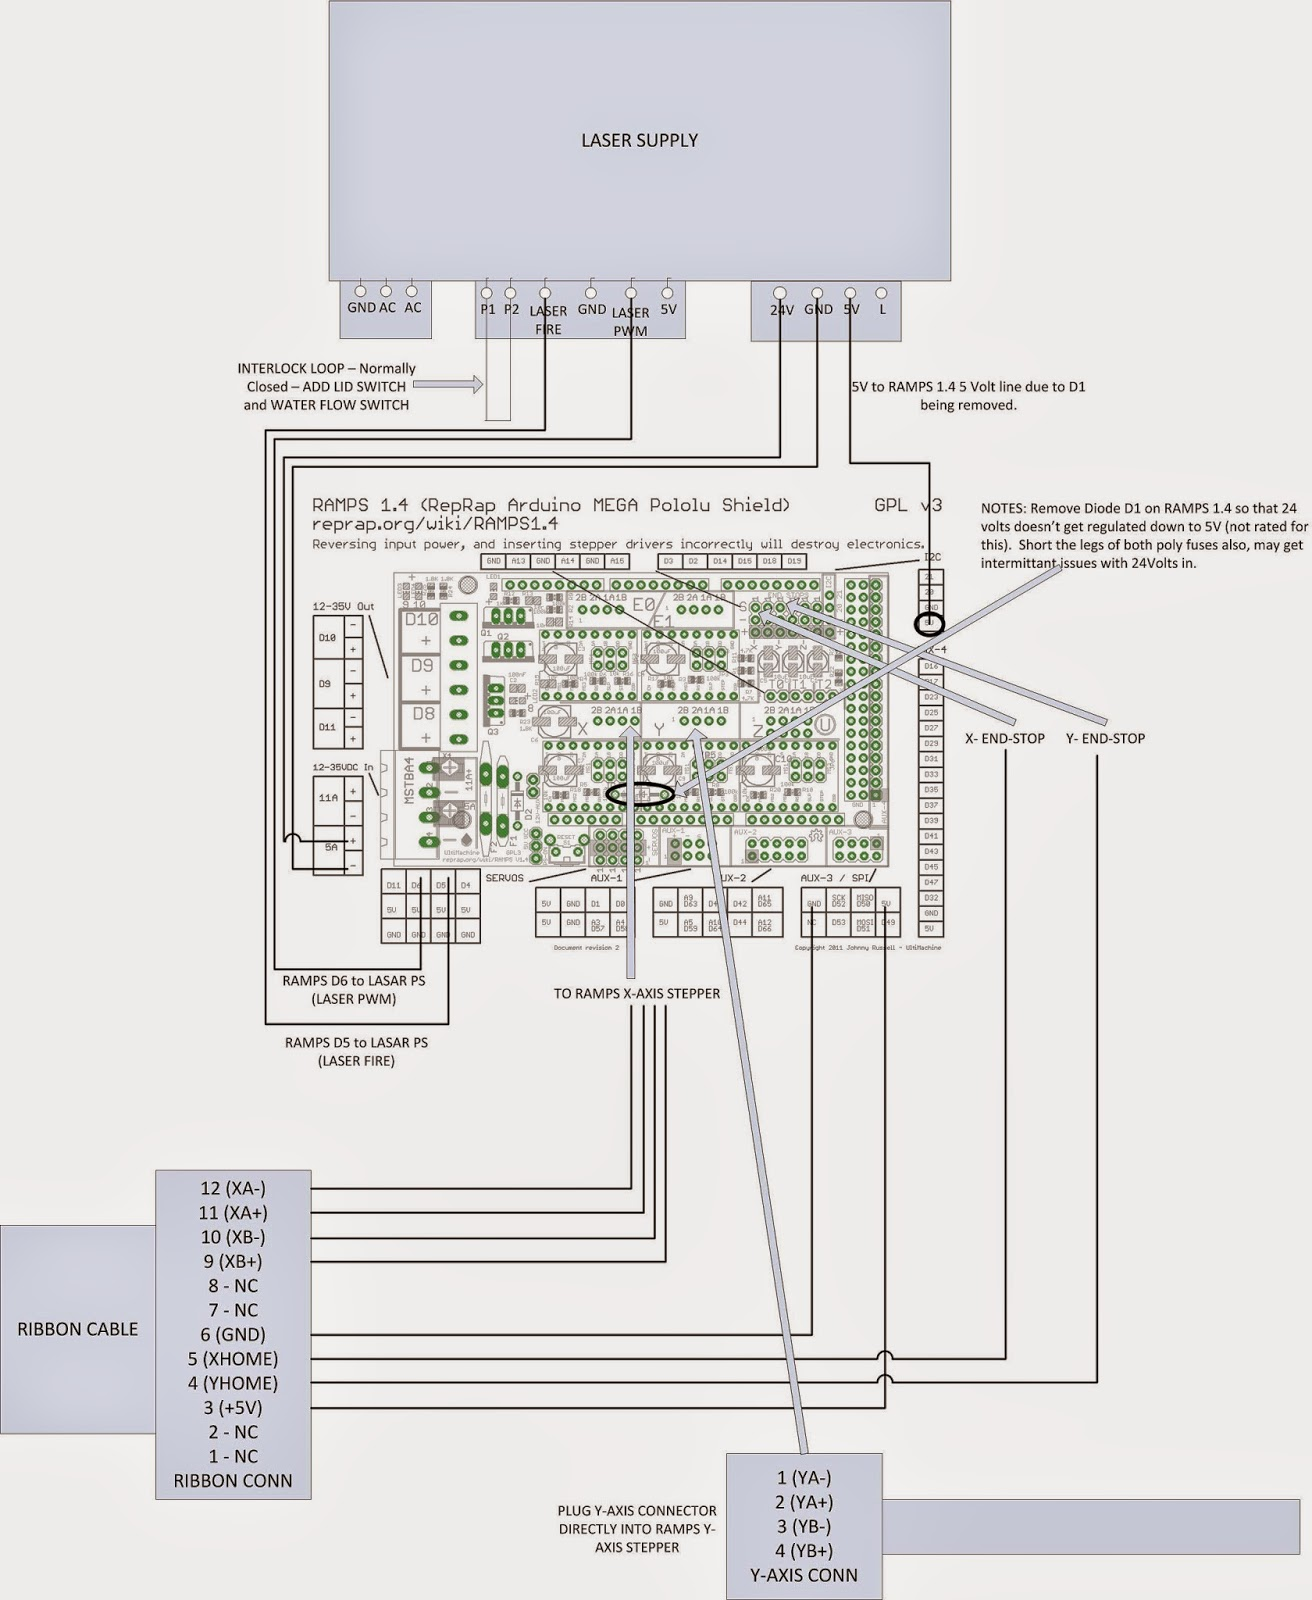 k40 ramps conversion · explodinglemur presentations wiki · github wiring diagram ramps pinout